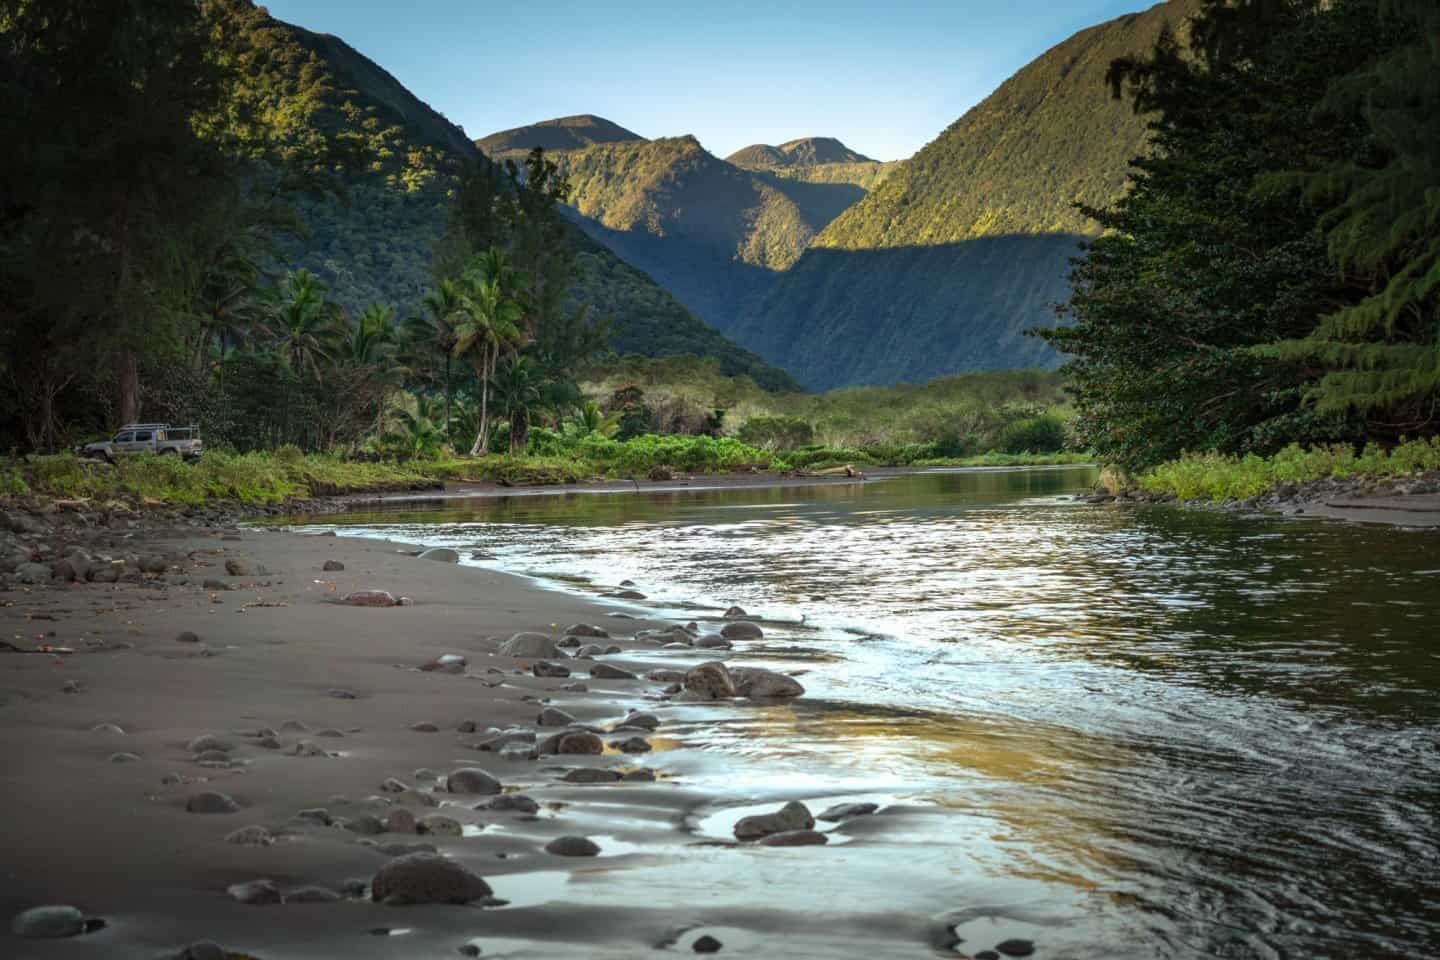 Big island photography location: A view of the Waipio Valley from the remote beach below.